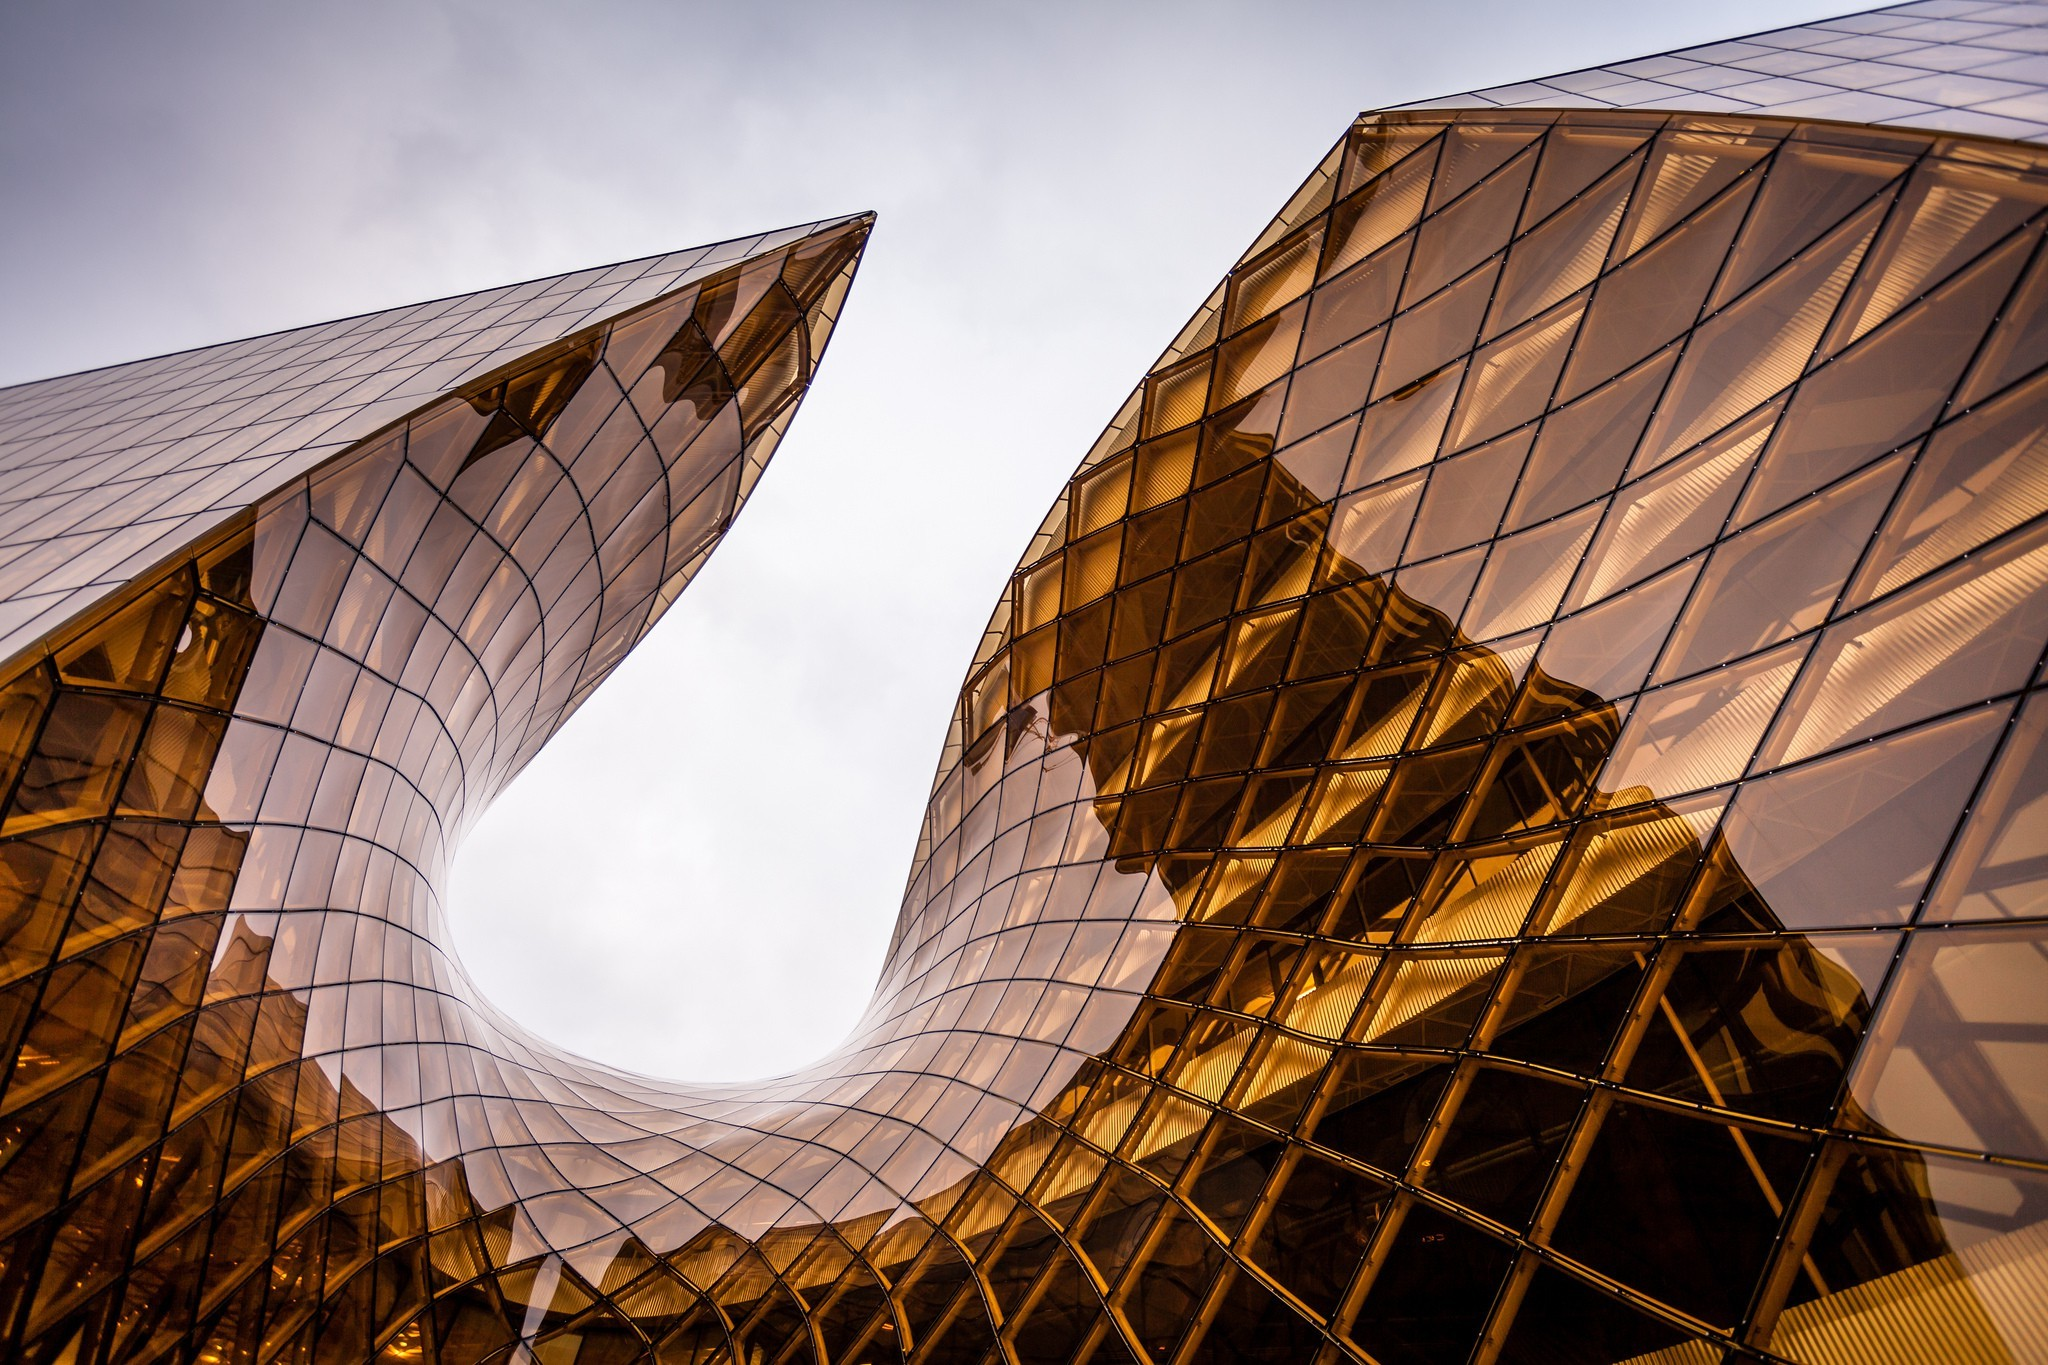 architecture Glass Reflection Sky Building Overcast Geometry 2048x1365